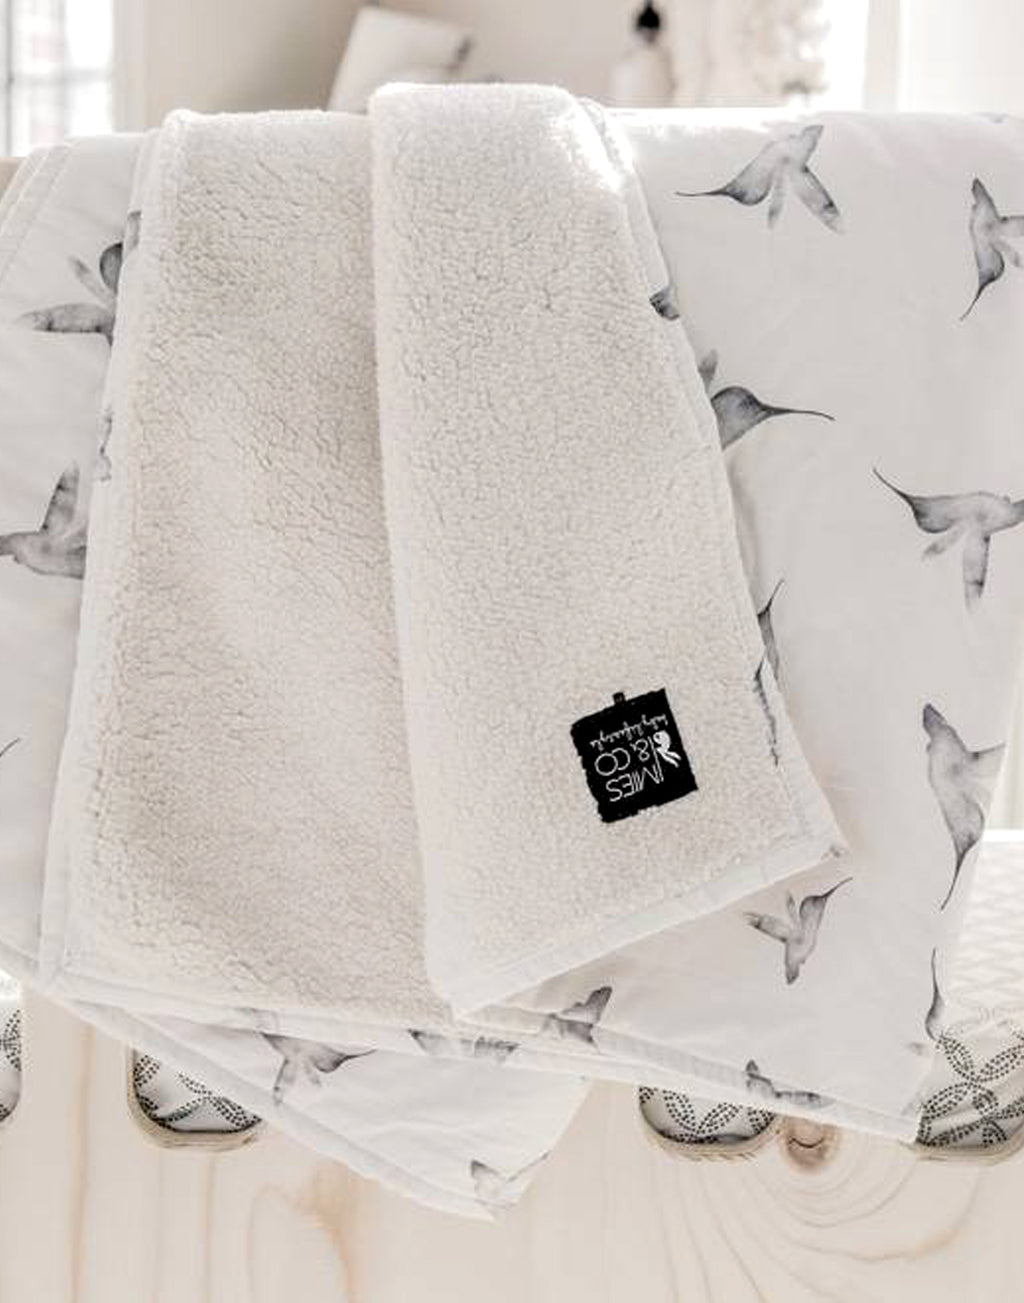 Mies & Co   Soft teddy blanket with all over dots print! Ideal for the crib or on the gun in the stroller/pram.   Size: 70 x 100cm.  Color: off white, dark grey.  Composition: 100% cotton, layered with 100% polyester teddy.   Dutch design, made in Europe.